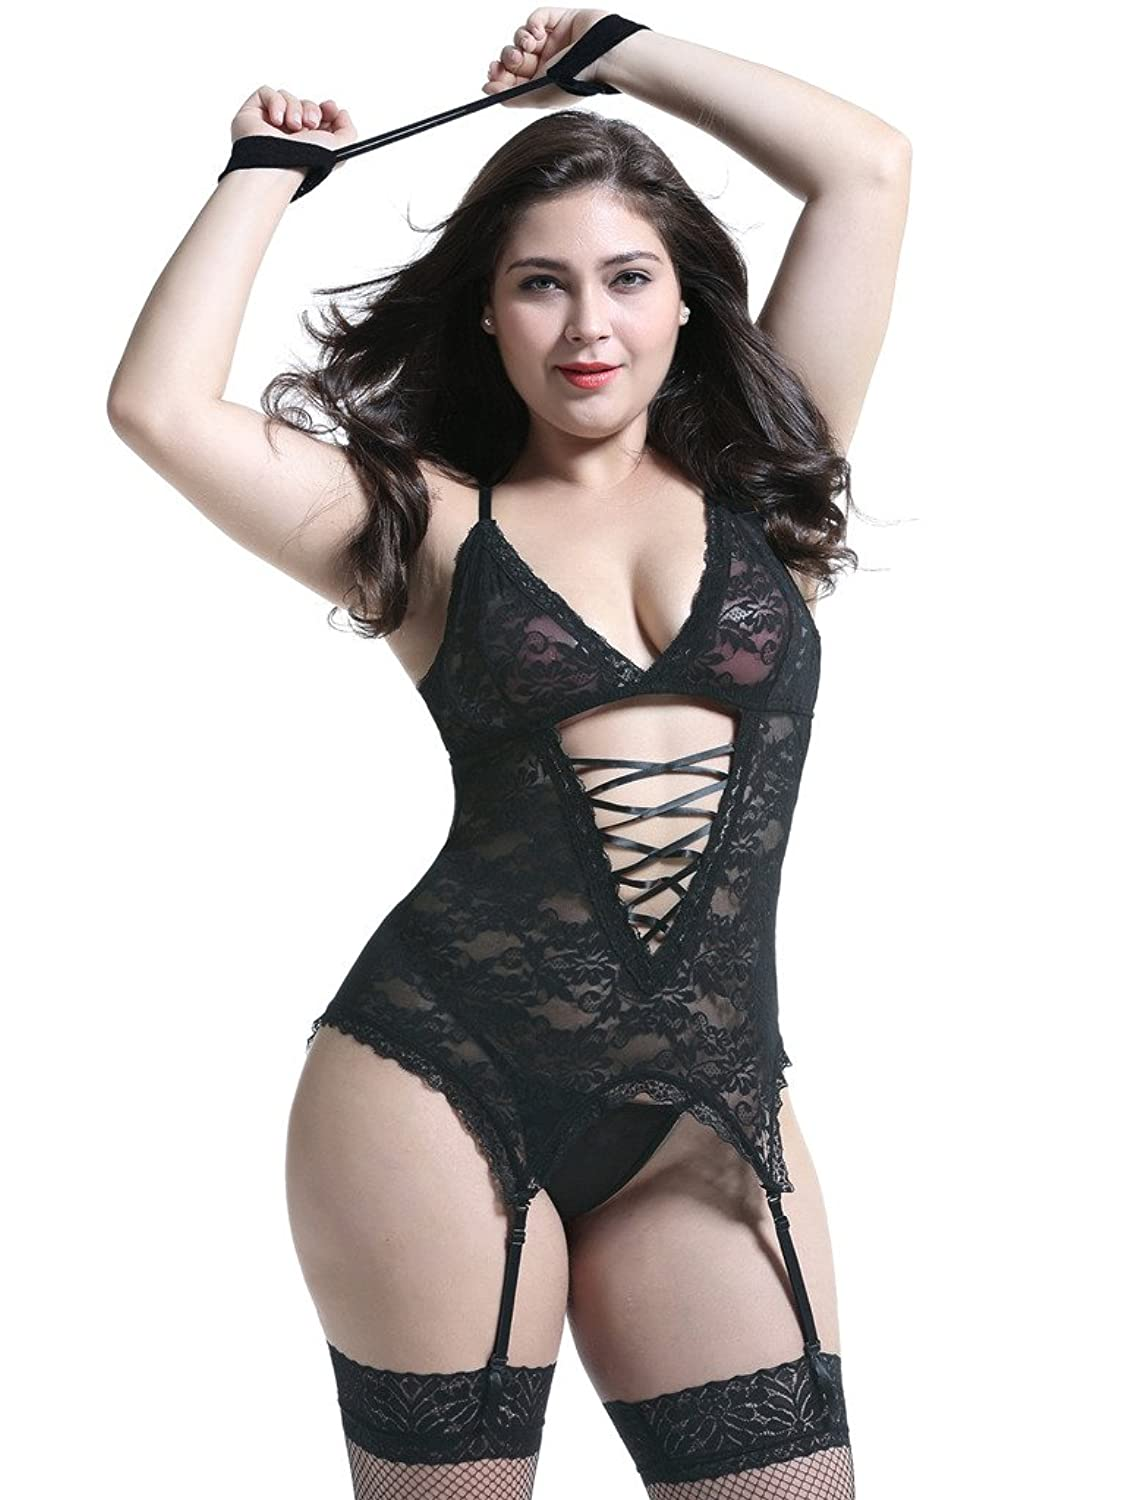 Anyou Plus Size Lingerie Sets Stretchy Lace Women Lingerie Chemise Nightwear with Hand-Cuff,G-String,Stockings